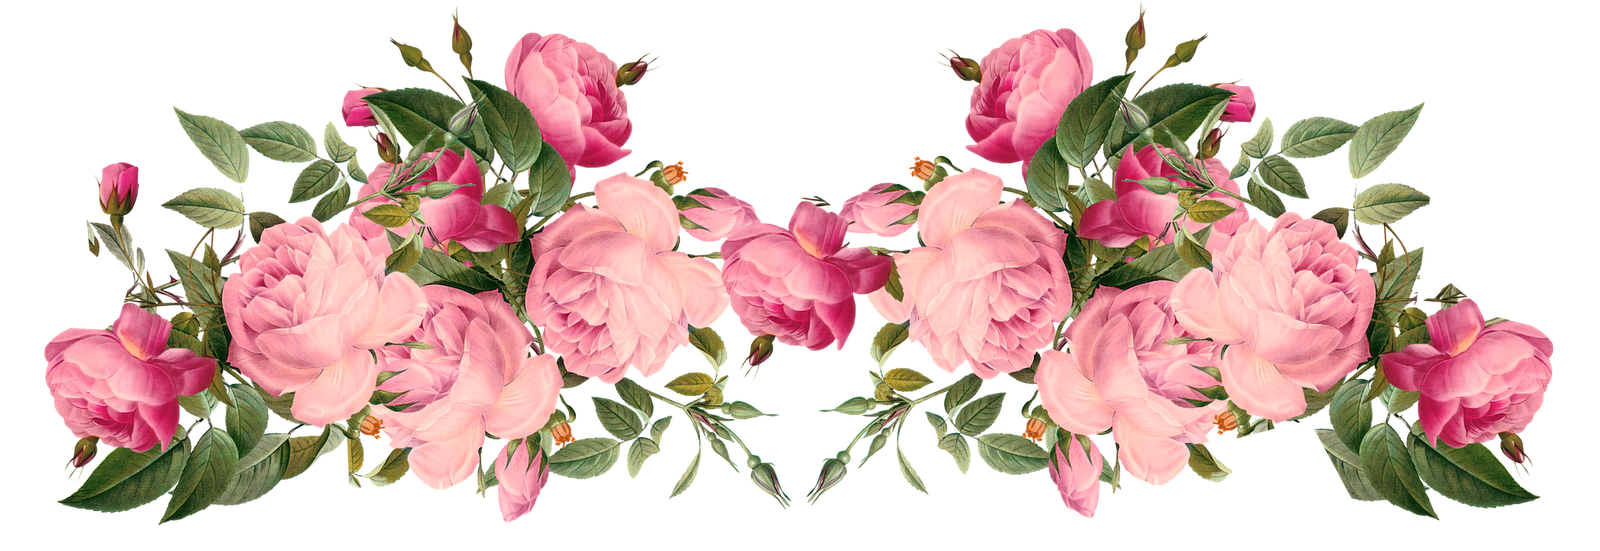 Border png hufford family. Rose clipart borders